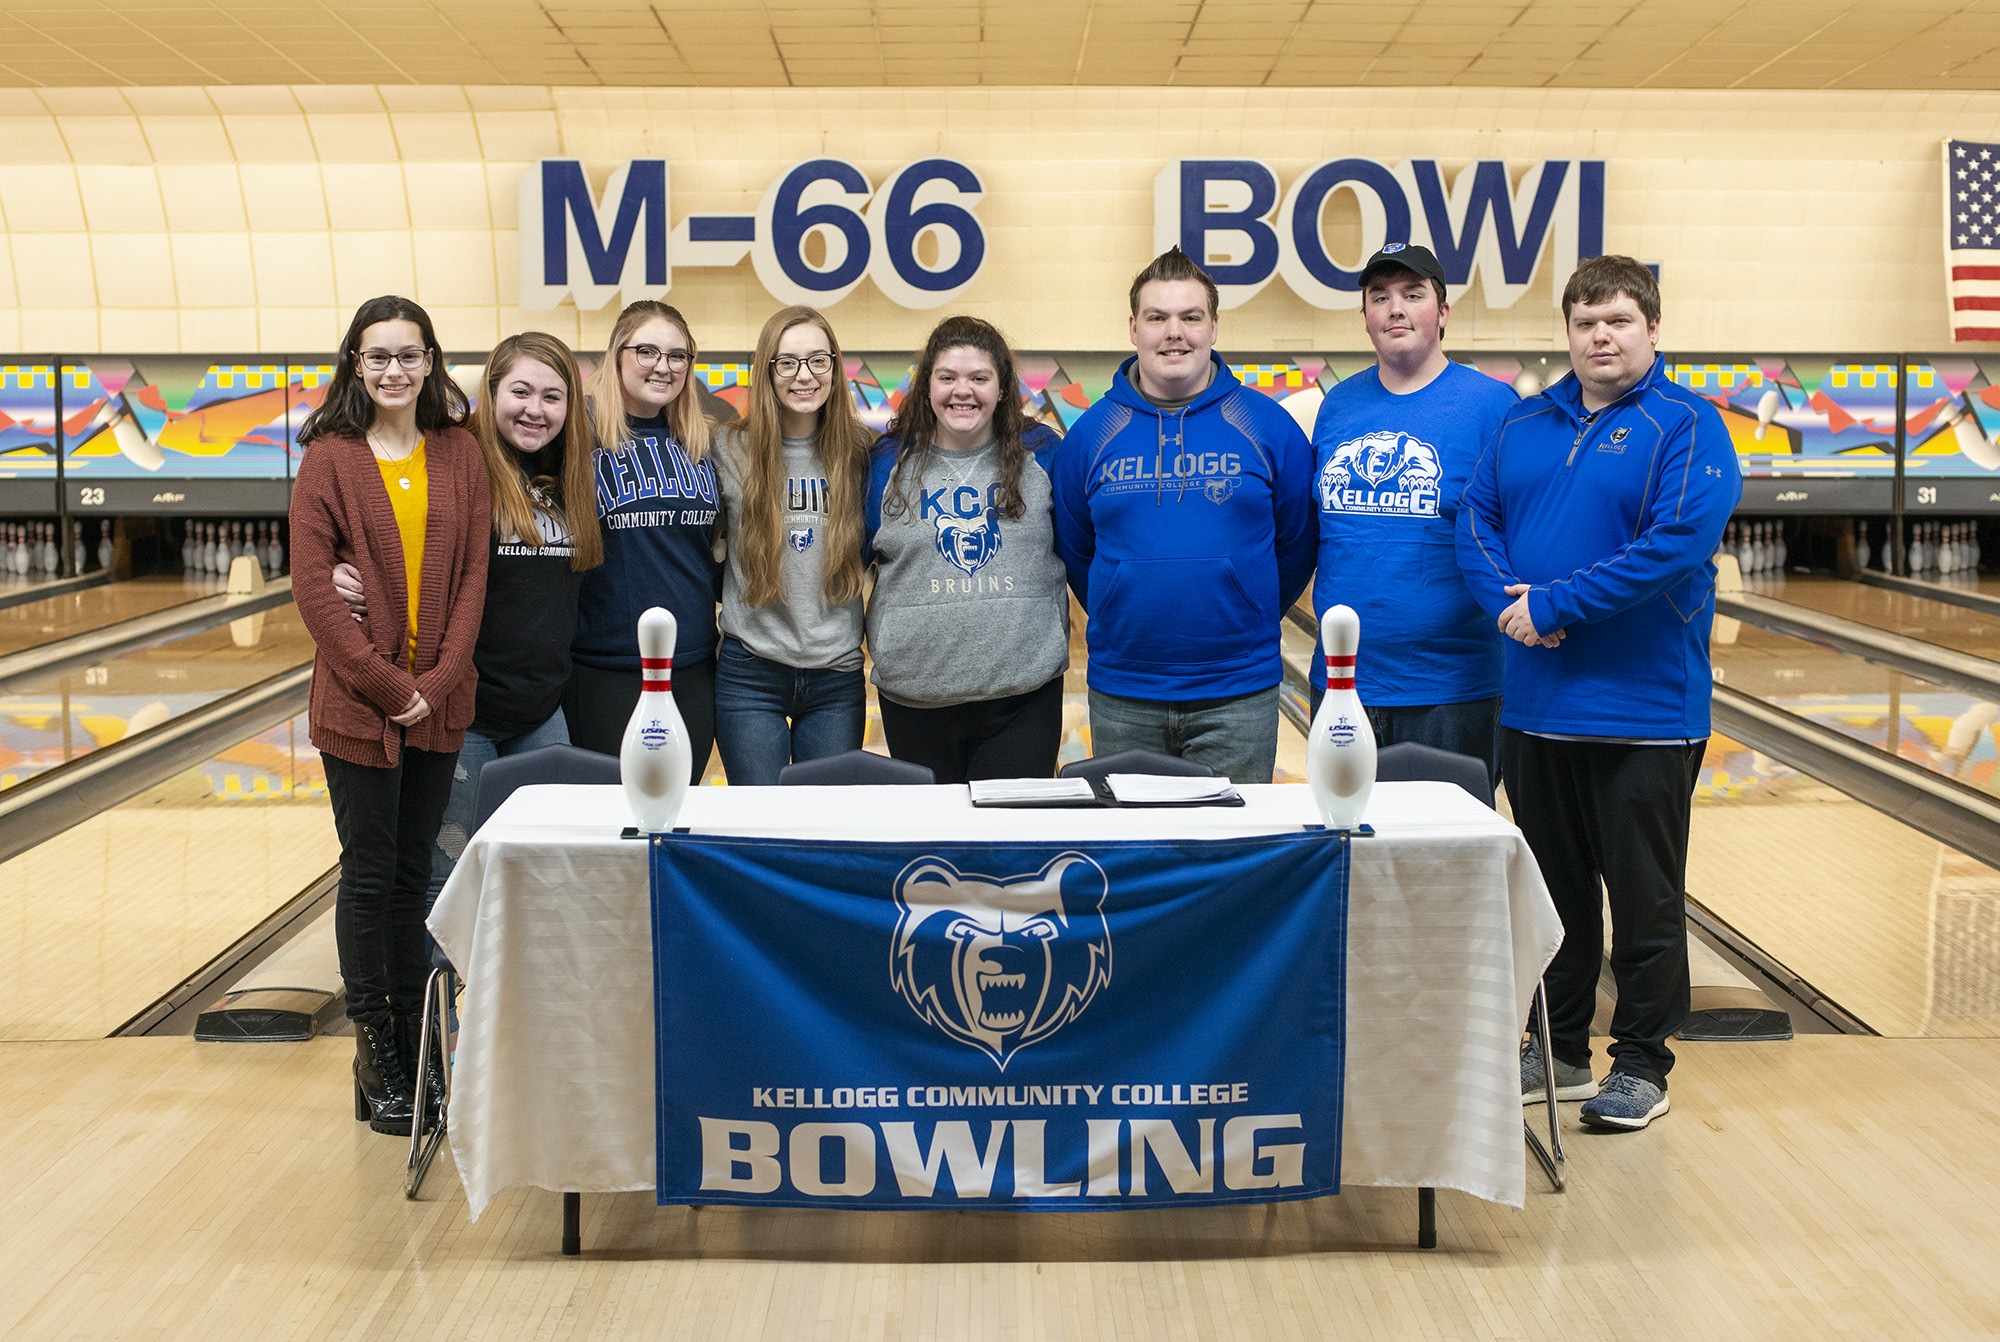 Pictured, from left to right, are KCC bowlers Rachel Erskine, Makayla Skidmore, Steffanie Woodman, Kelsey Kipp, Emma O'Donnell, Jacob O'Donnell and Andrew McKibbin, with Head Coach Brad Morgan.